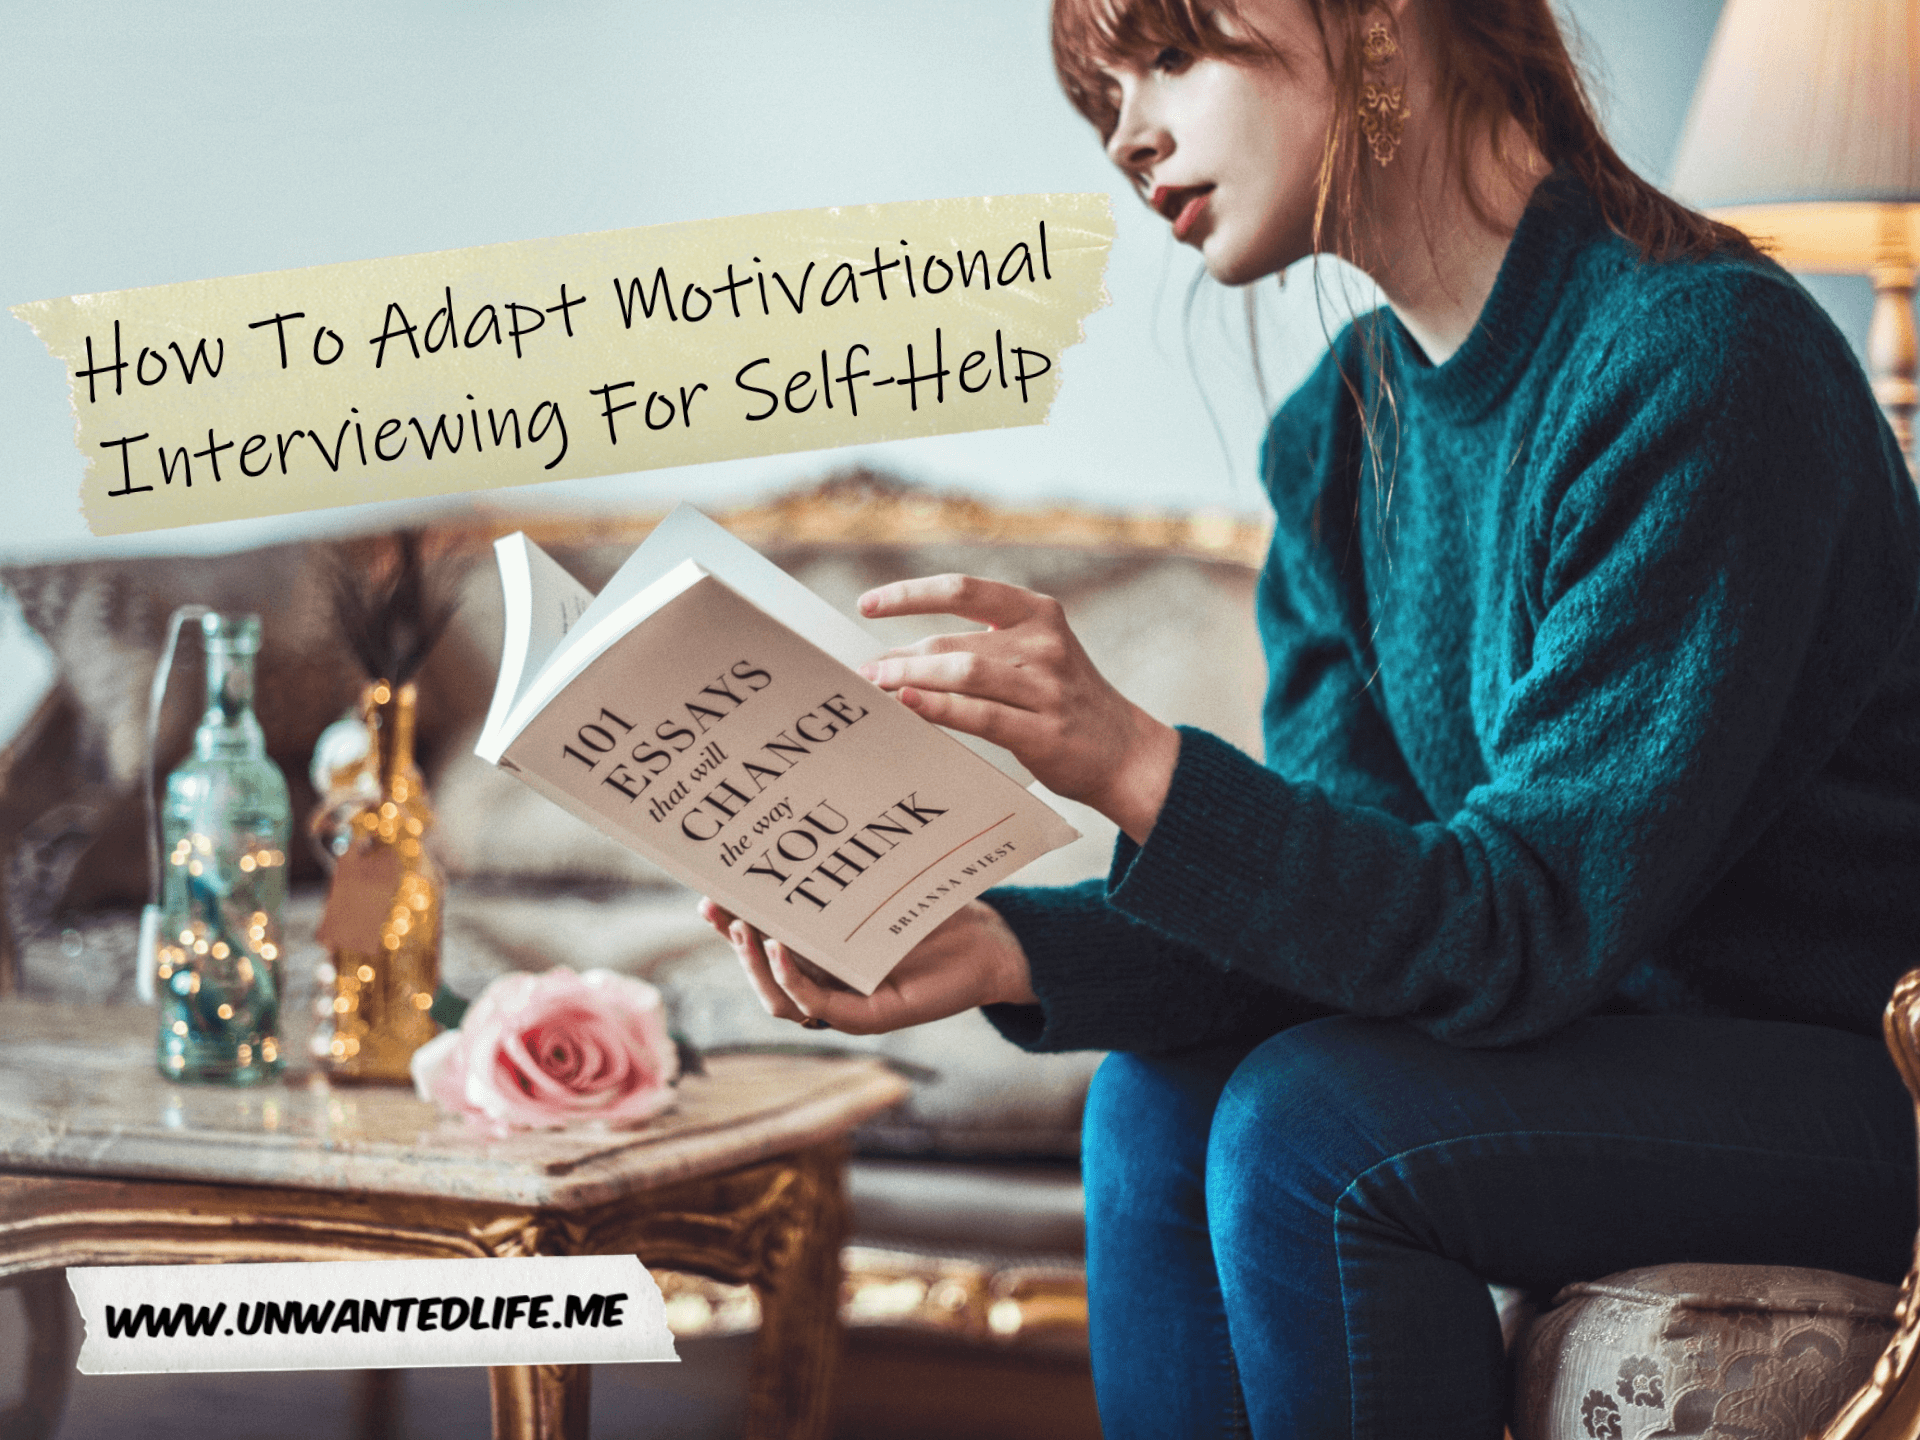 A white woman sitting down in her living room reading a self-help book to represent the topic of the article - How To Adapt Motivational Interviewing For Self-Help